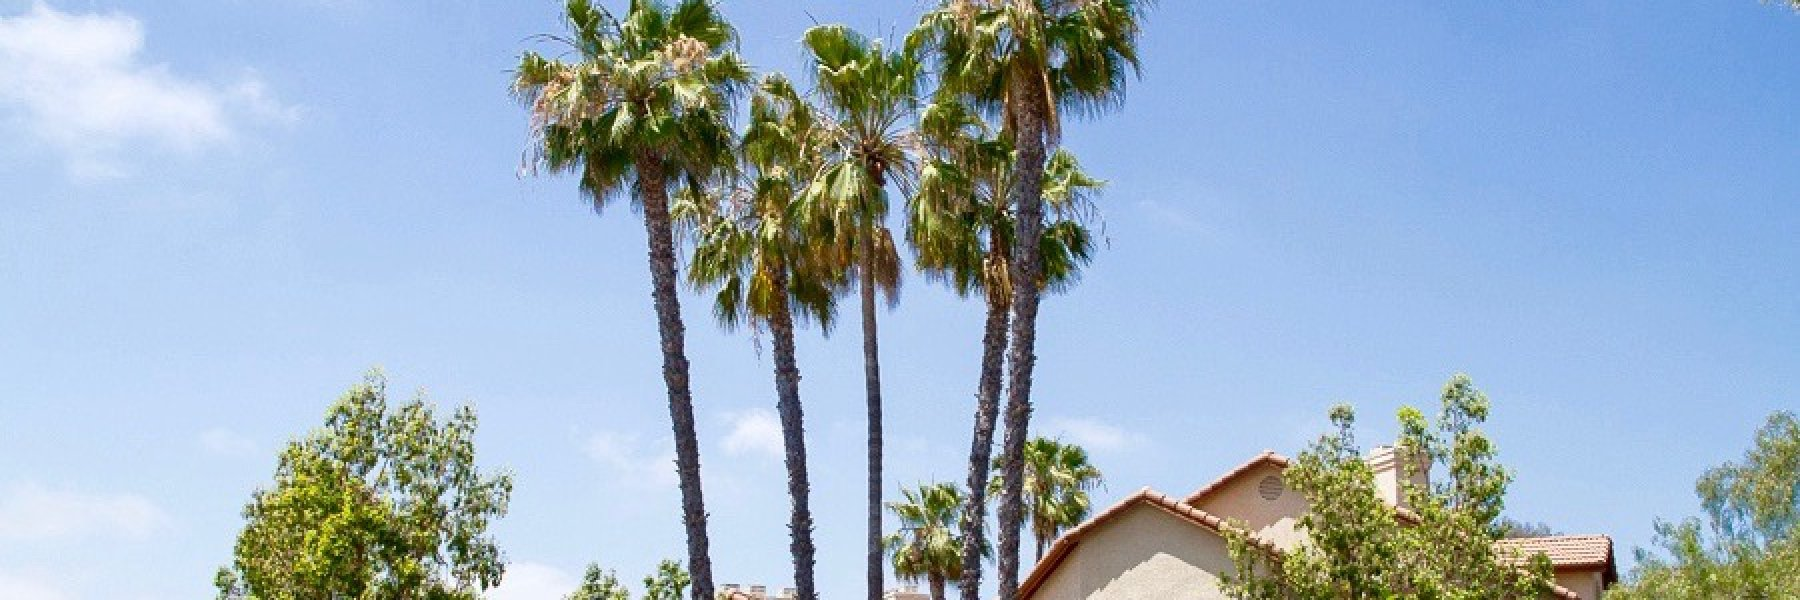 Affinity is a community of attached homes in San Diego California